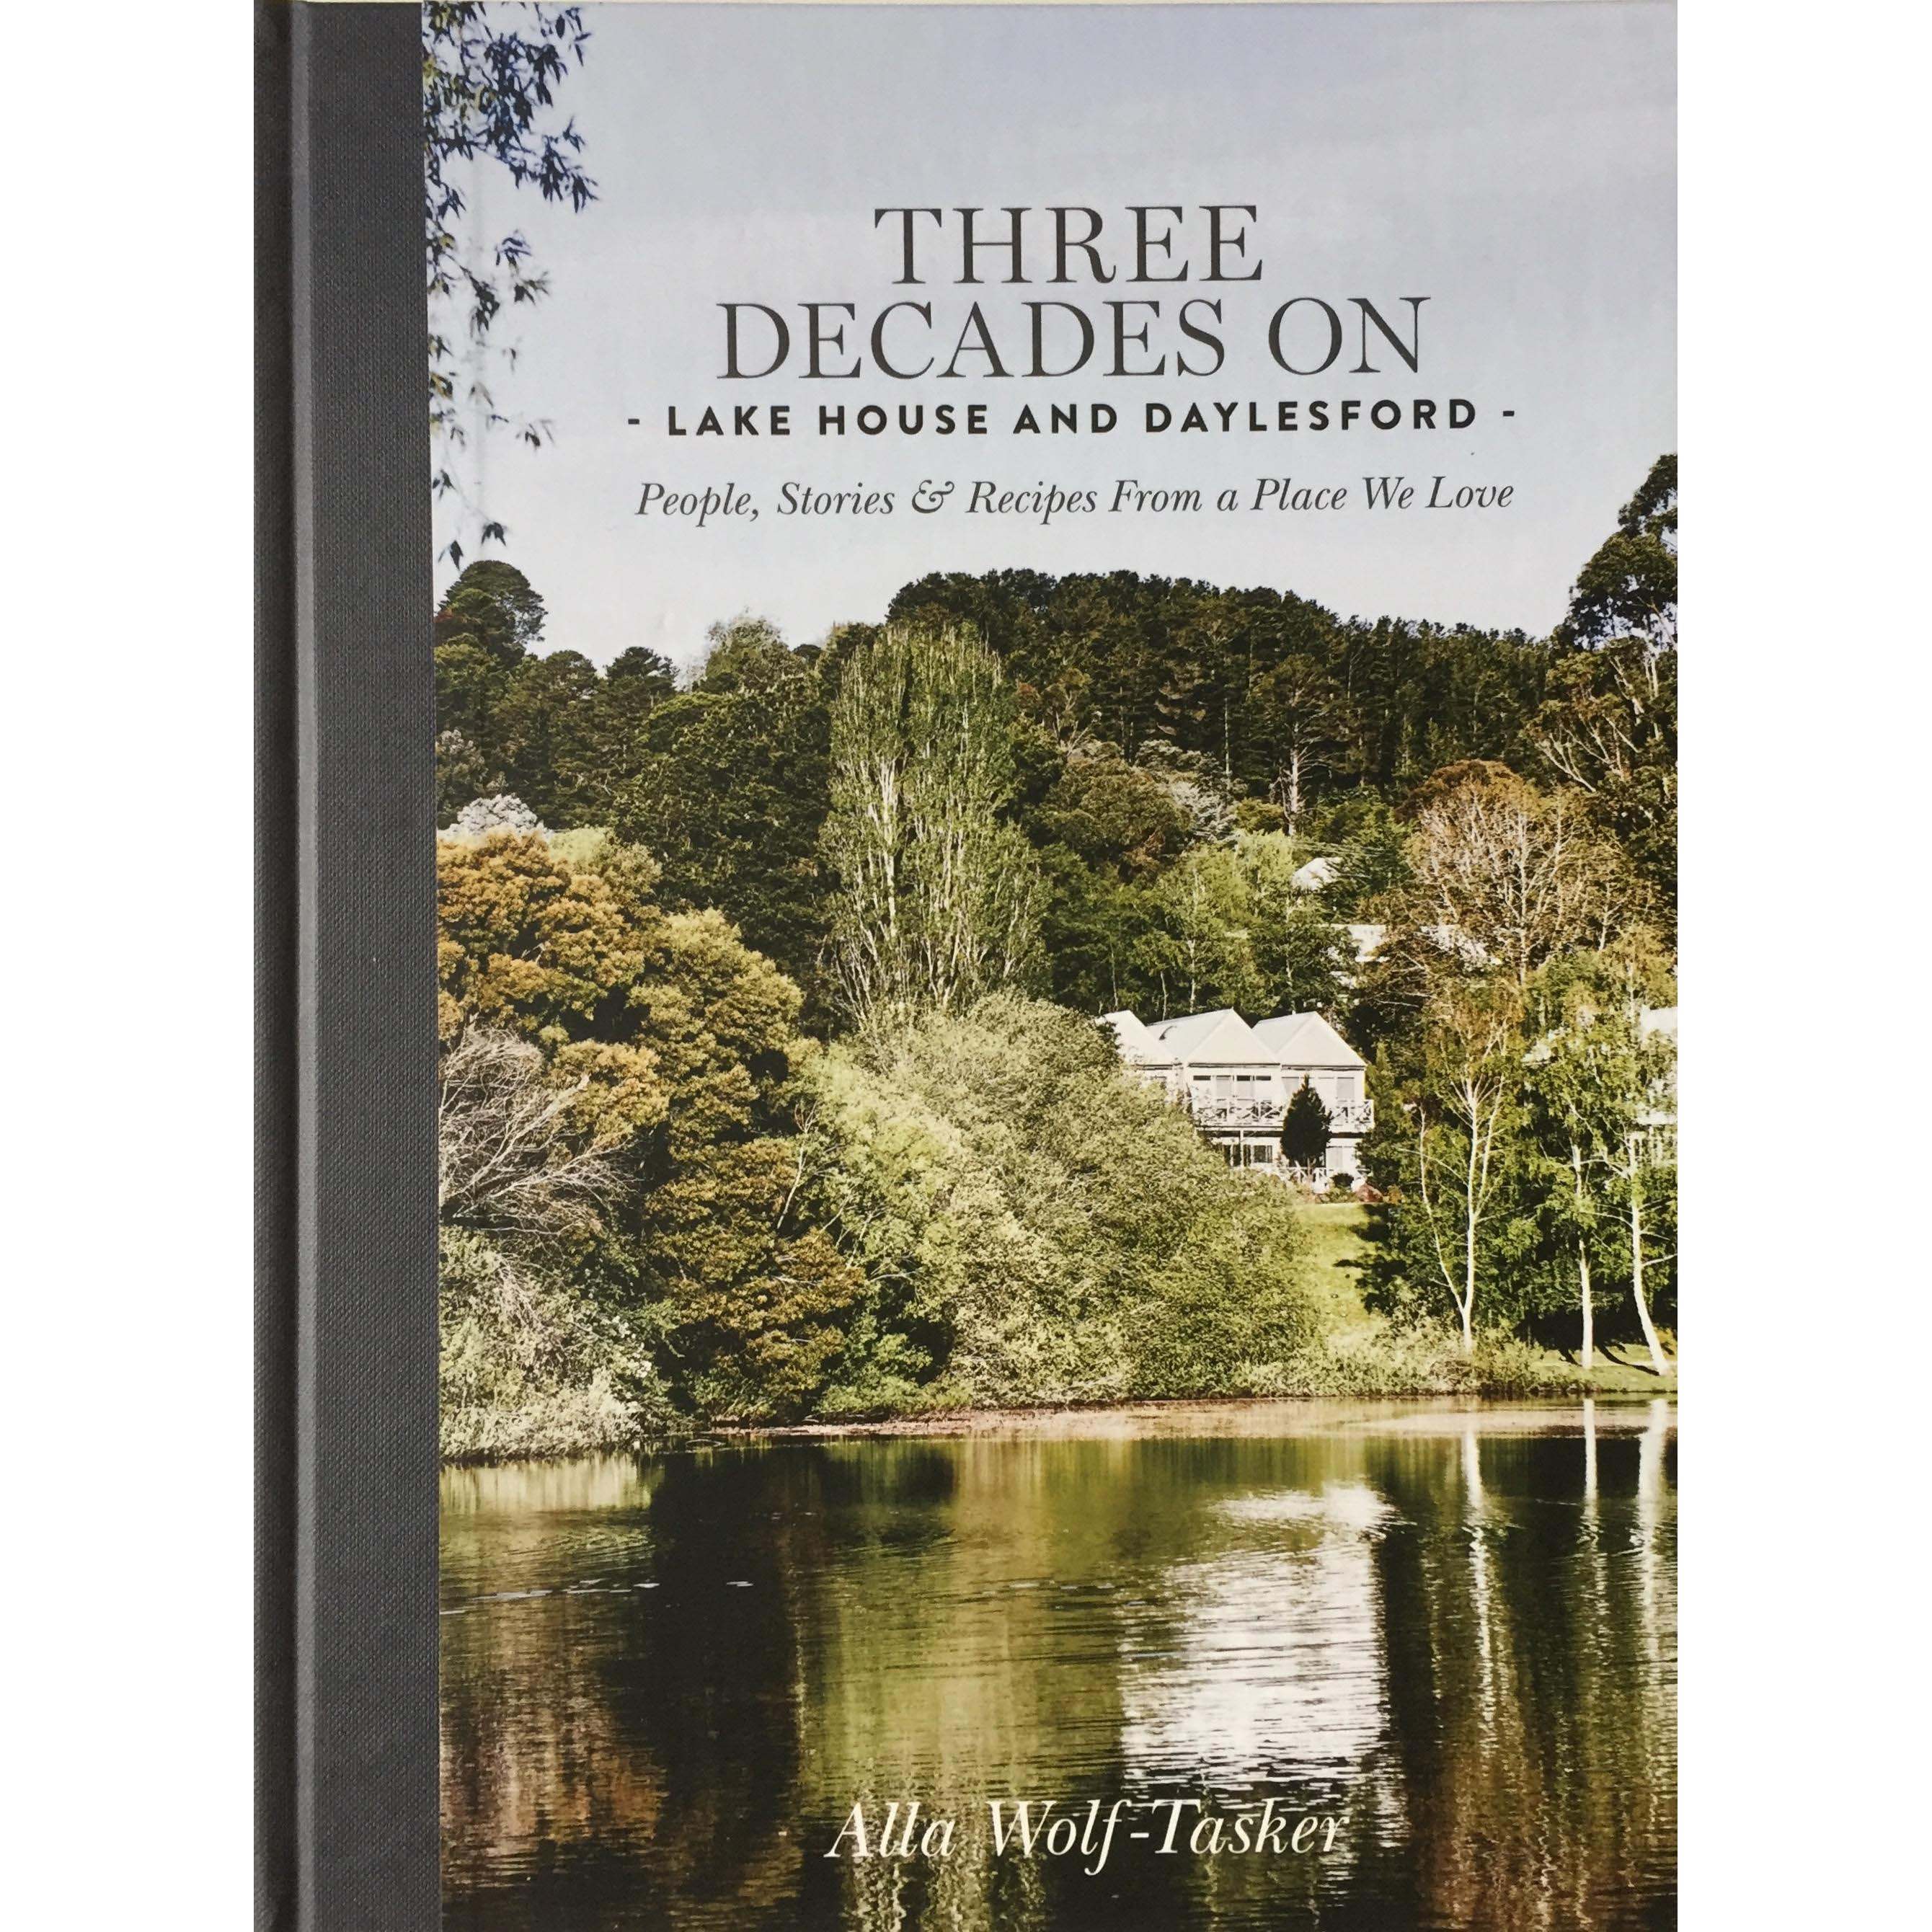 Three Decades On: Lake House and Daylesford